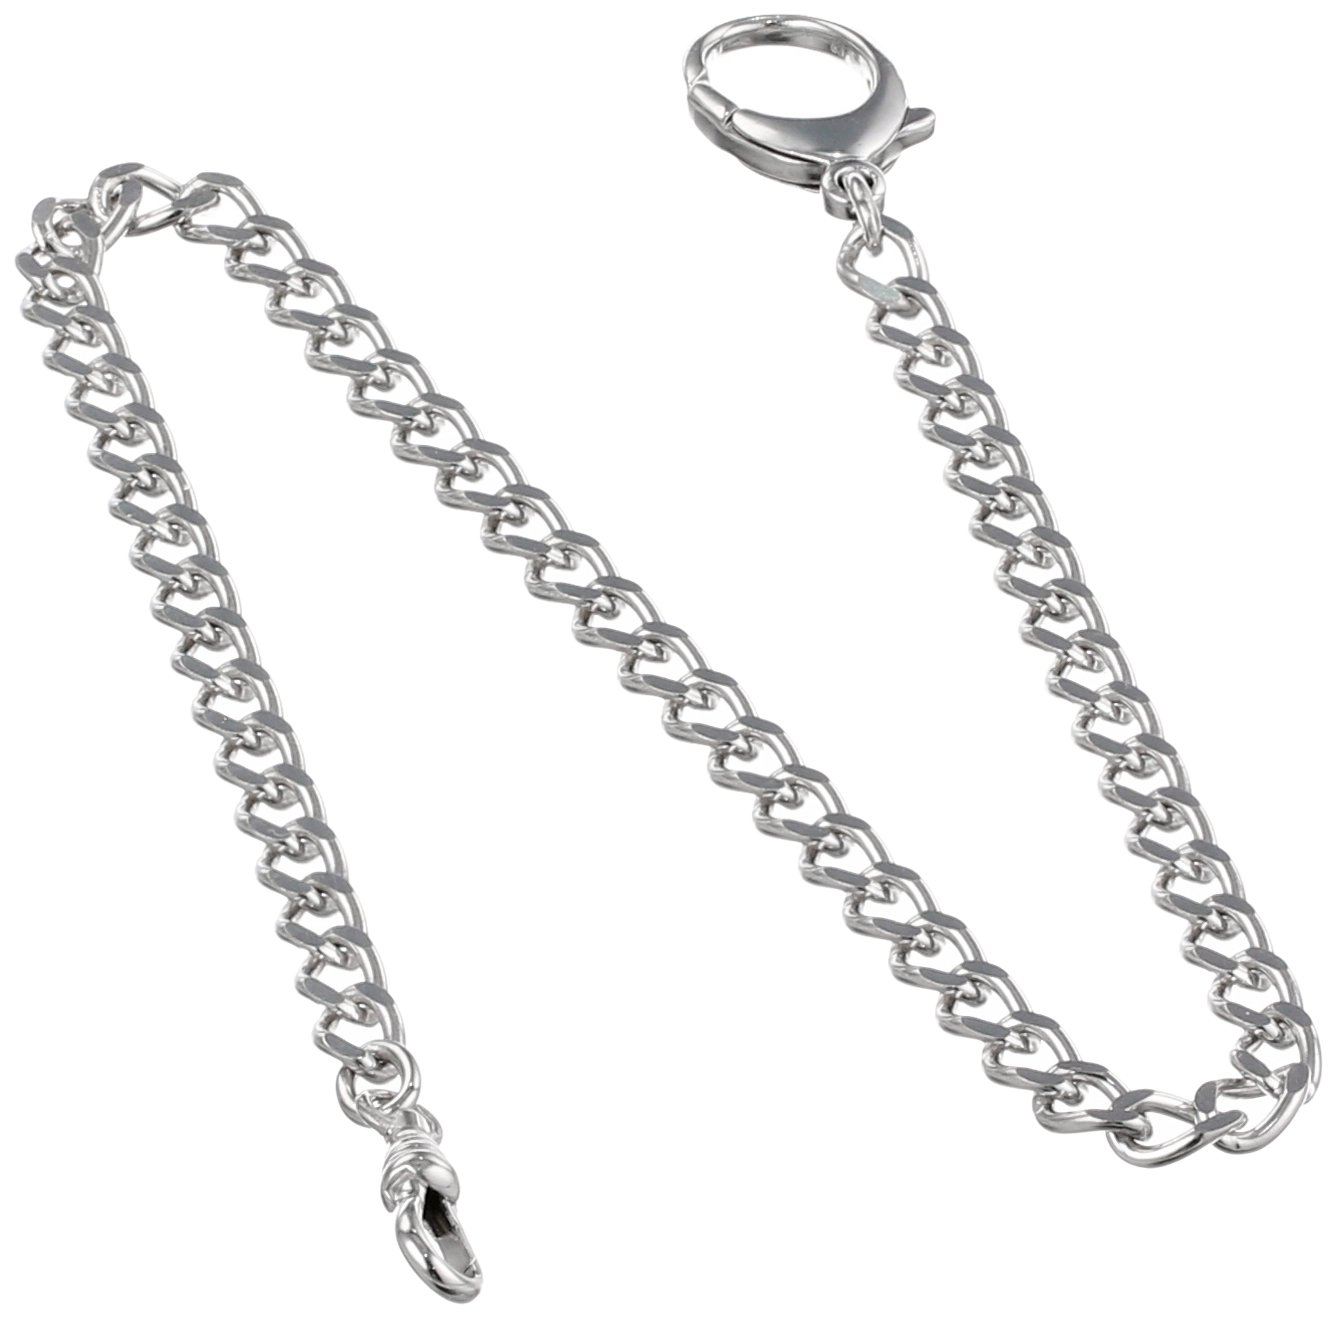 Charles-Hubert, Paris 3577 Sterling Silver Pocket Watch Chain